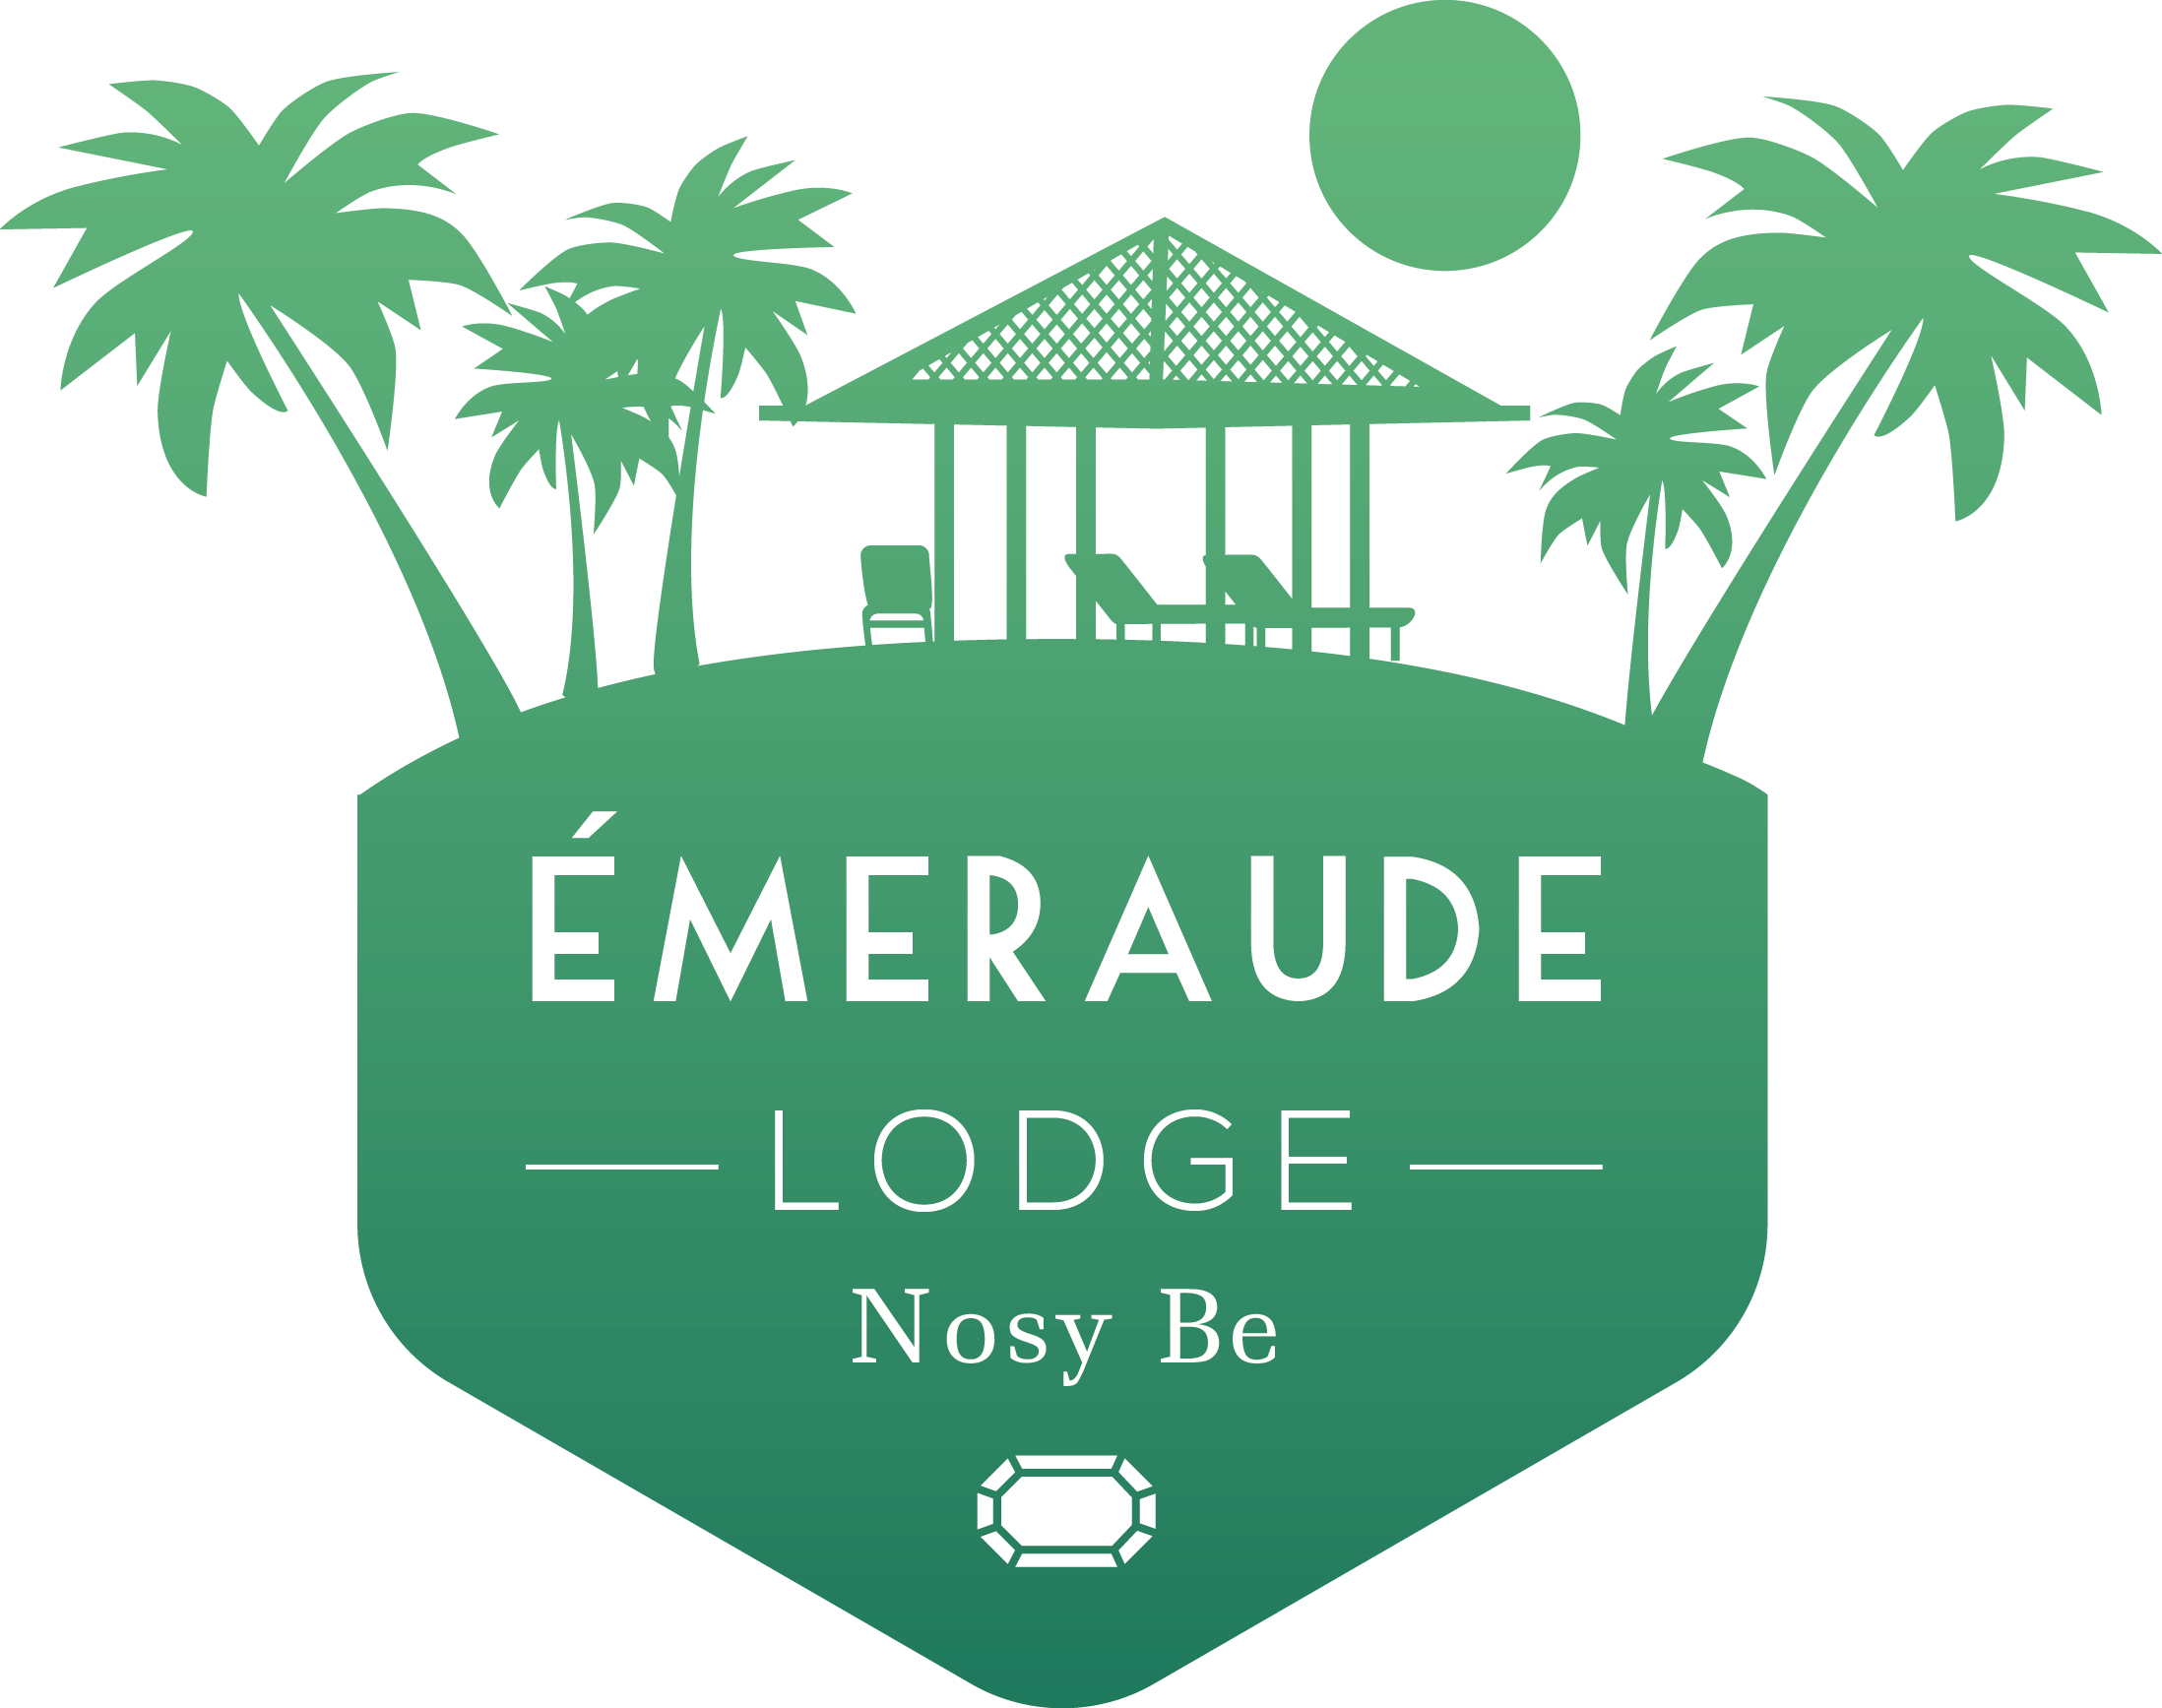 Emeraudelodge-nosybe